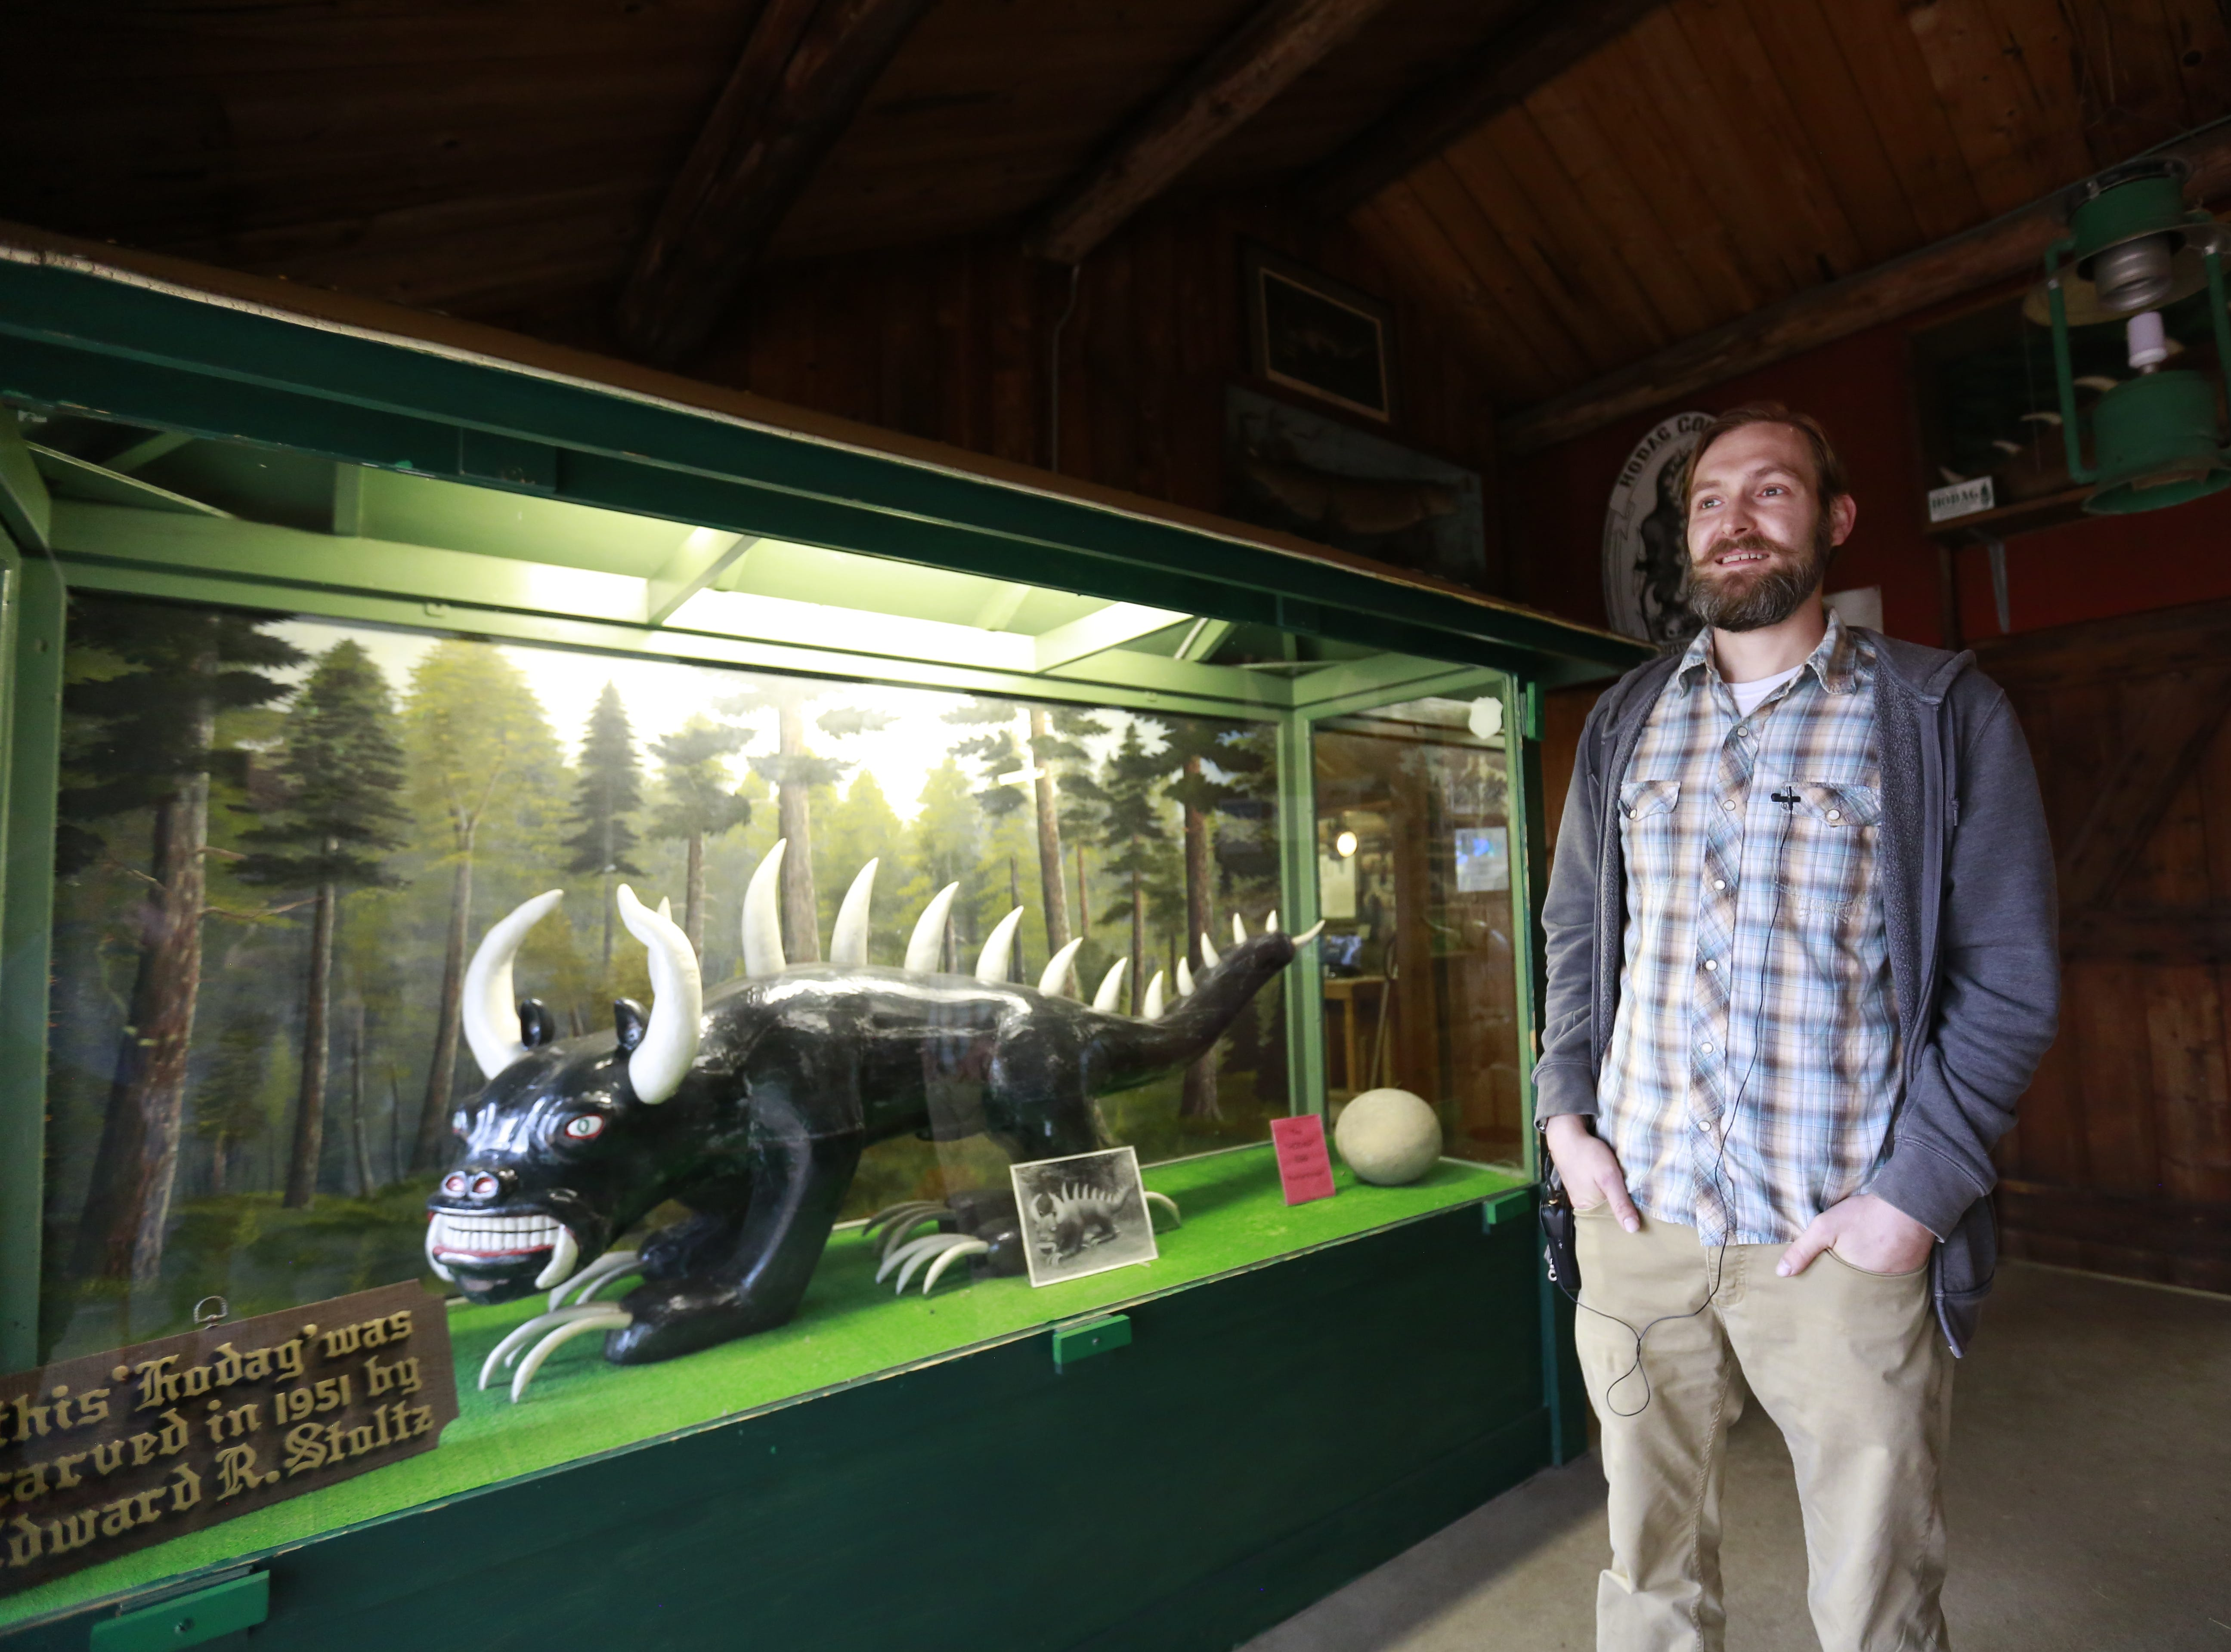 Coordinator Kerry Bloedorn retells the history behind the mythical creature Hodag to USA TODAY NETWORK-Wisconsin's reporter Keith Uhlig Tuesday, Sept. 25, 2018, at Pioneer Park Historical Complex in Rhinelander, Wis.